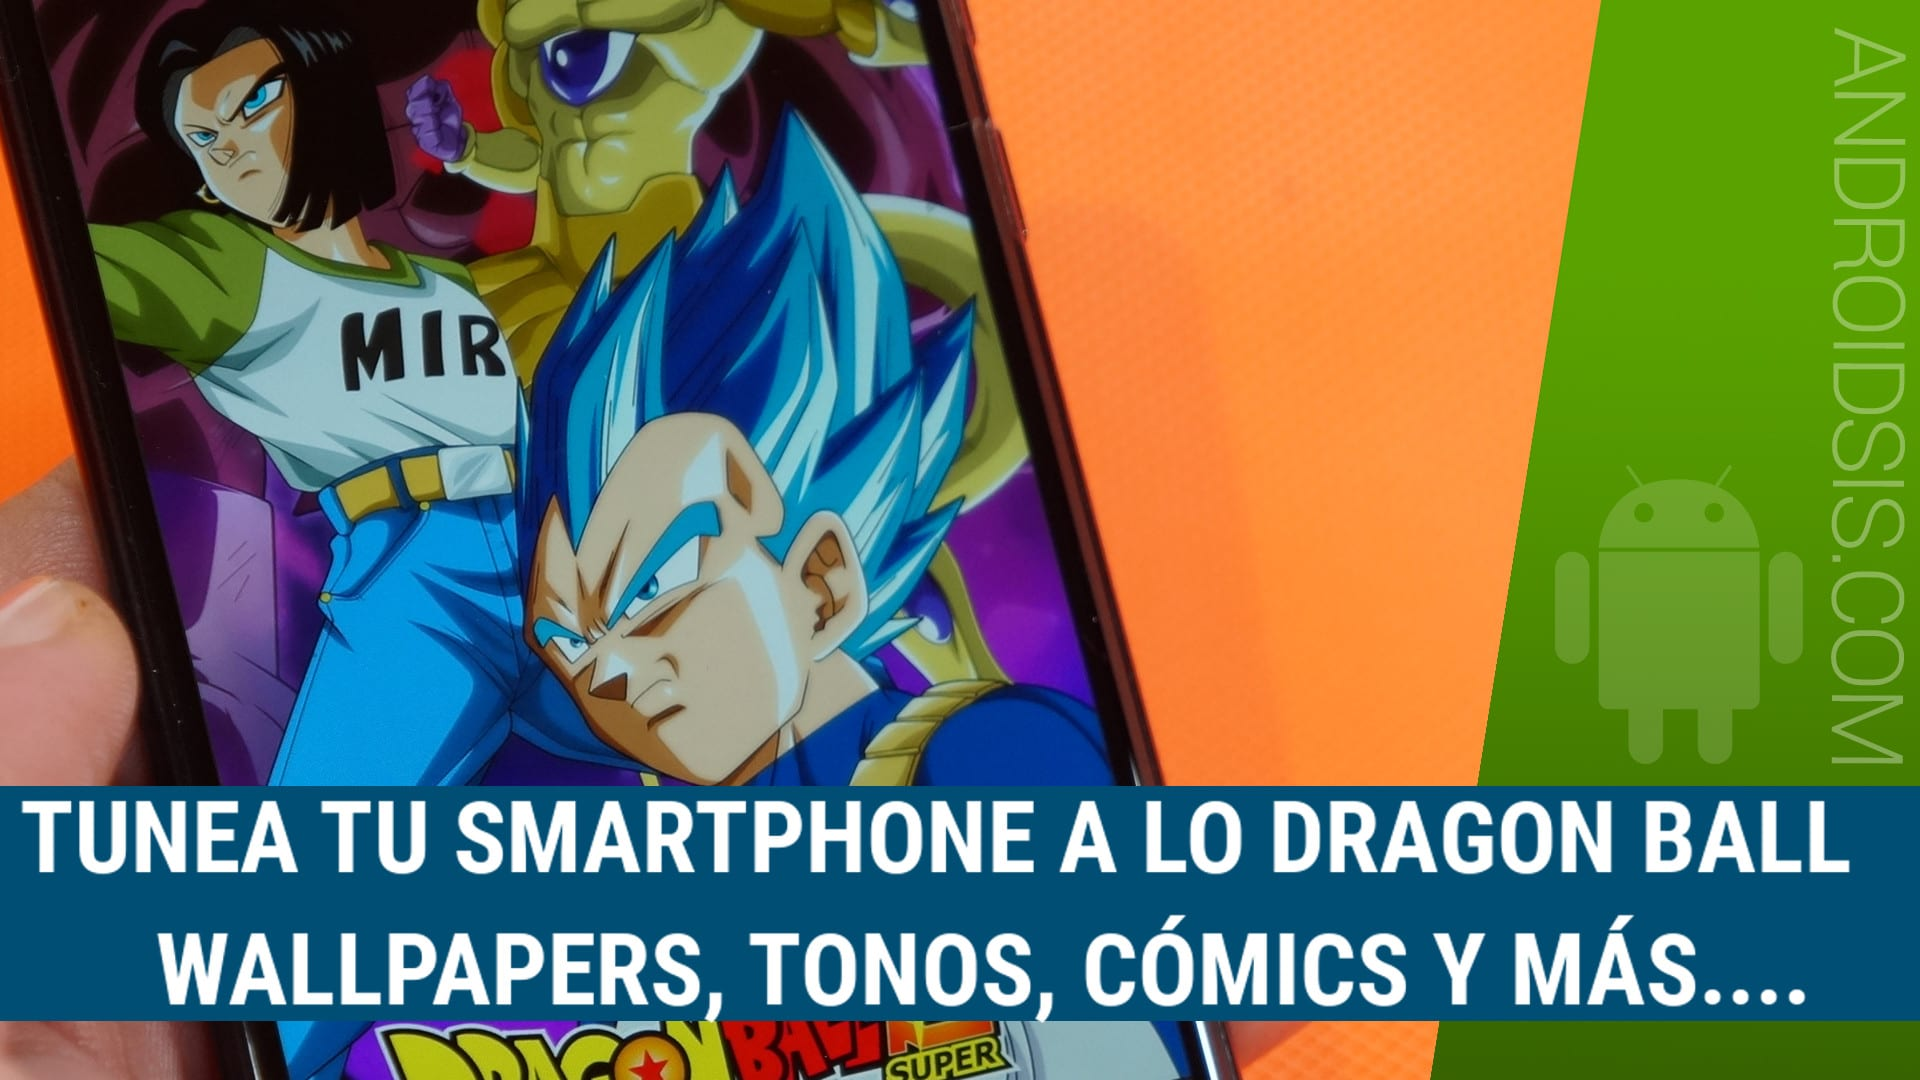 Descargar Wallpapers HD Dragon Ball, tonos, Cómics y más